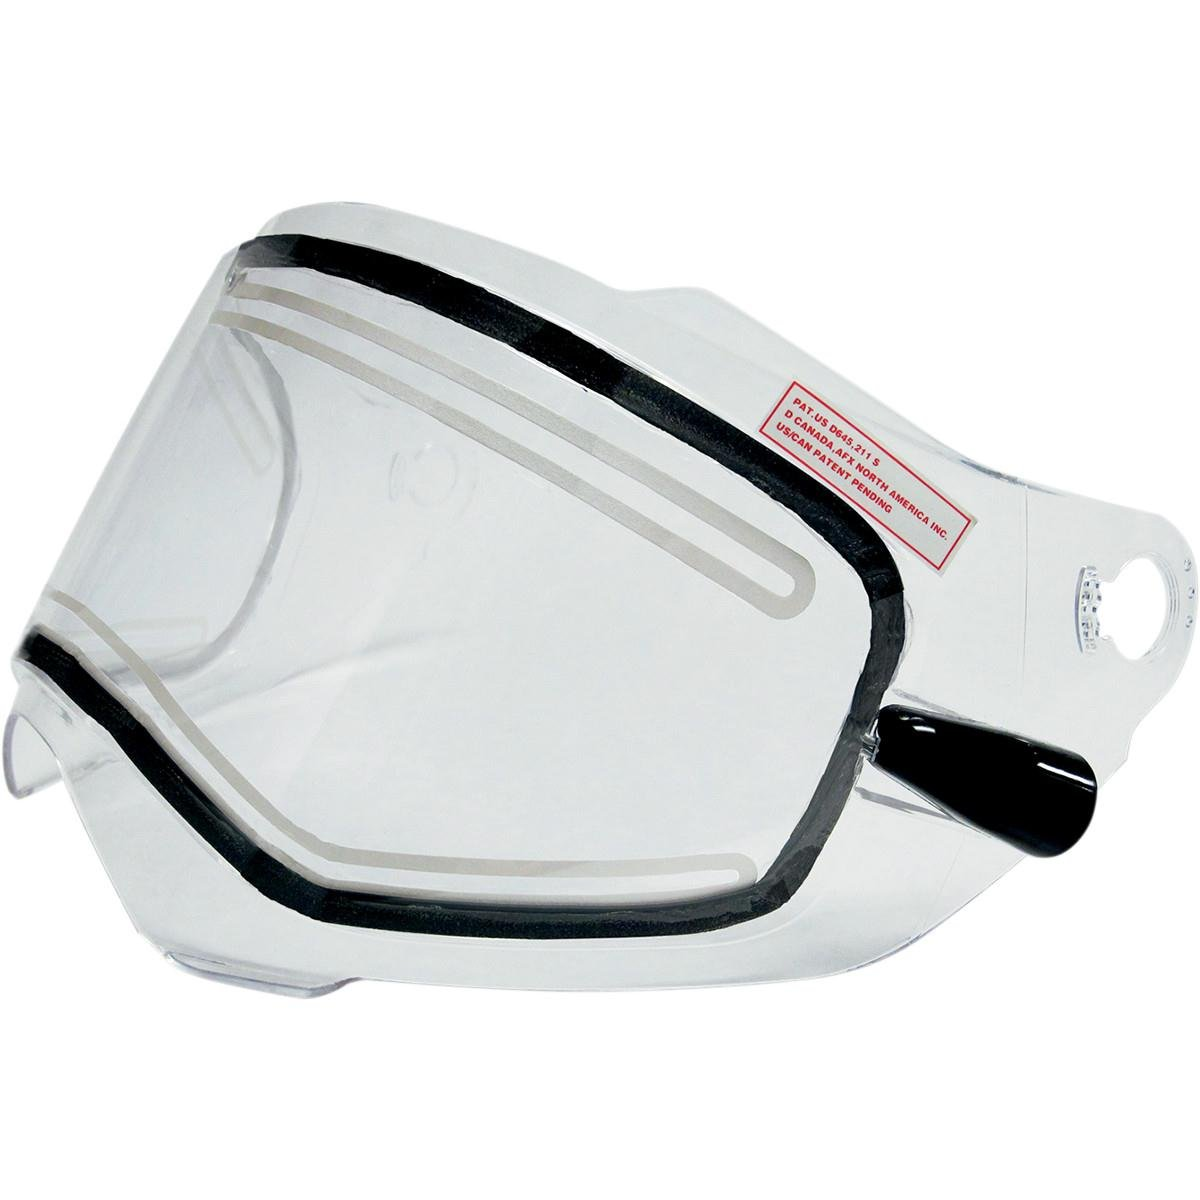 AFX AMPD Electric Dual-Lens Shield with Cords for FX-39 Dual Sport Helmet - Clear 0130-0460